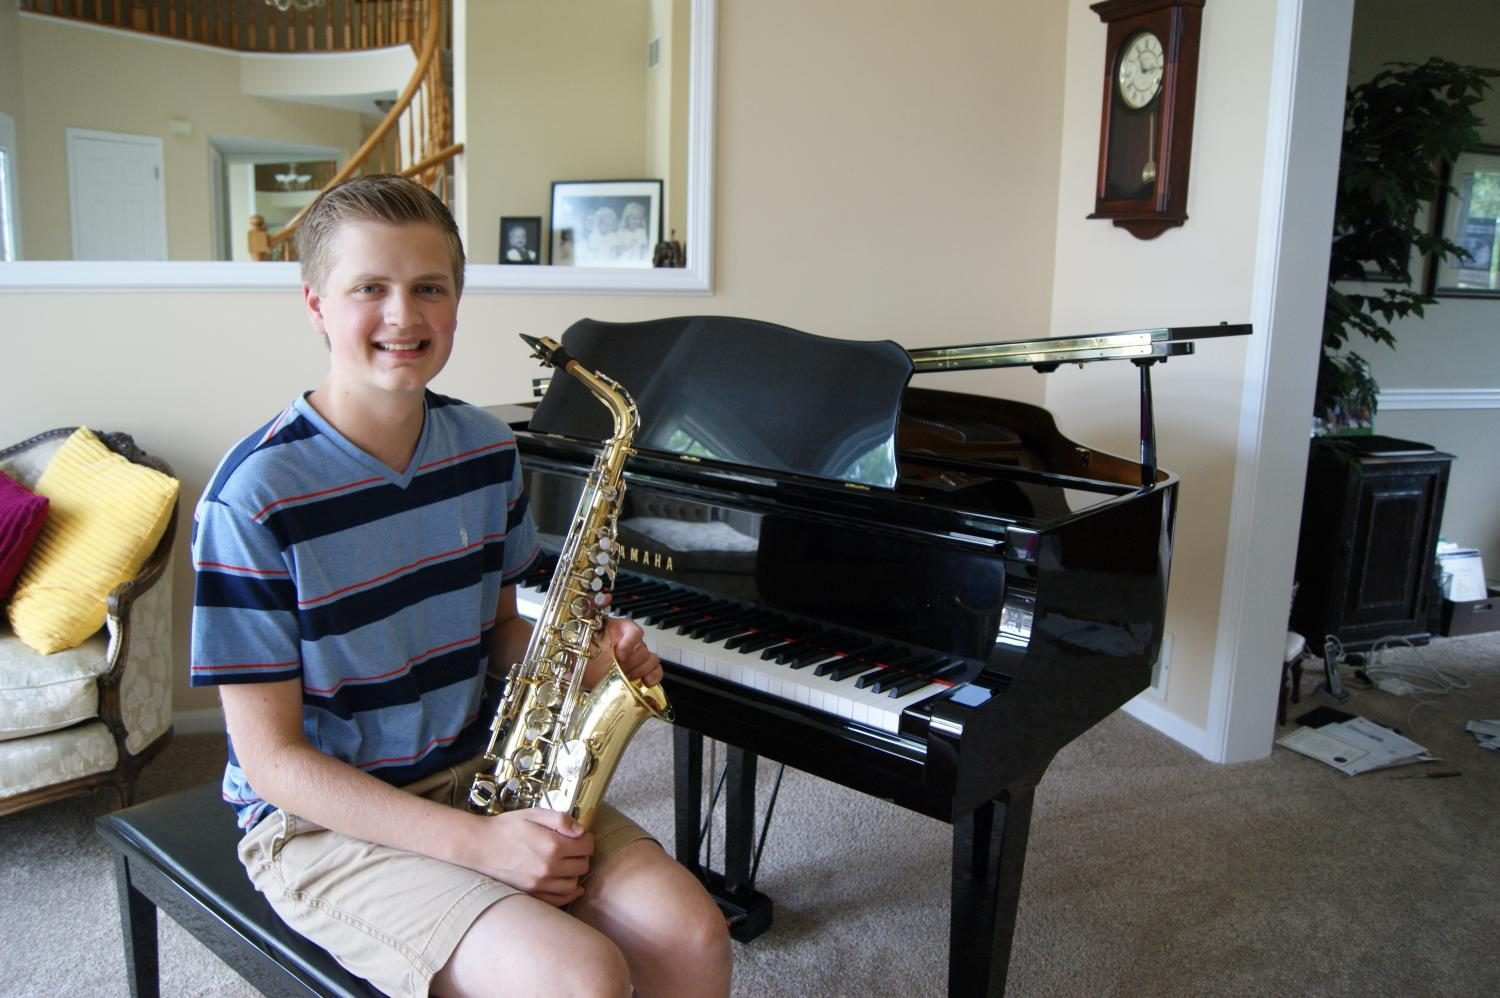 Key to Happiness: how one senior uses his creativity to excel in music